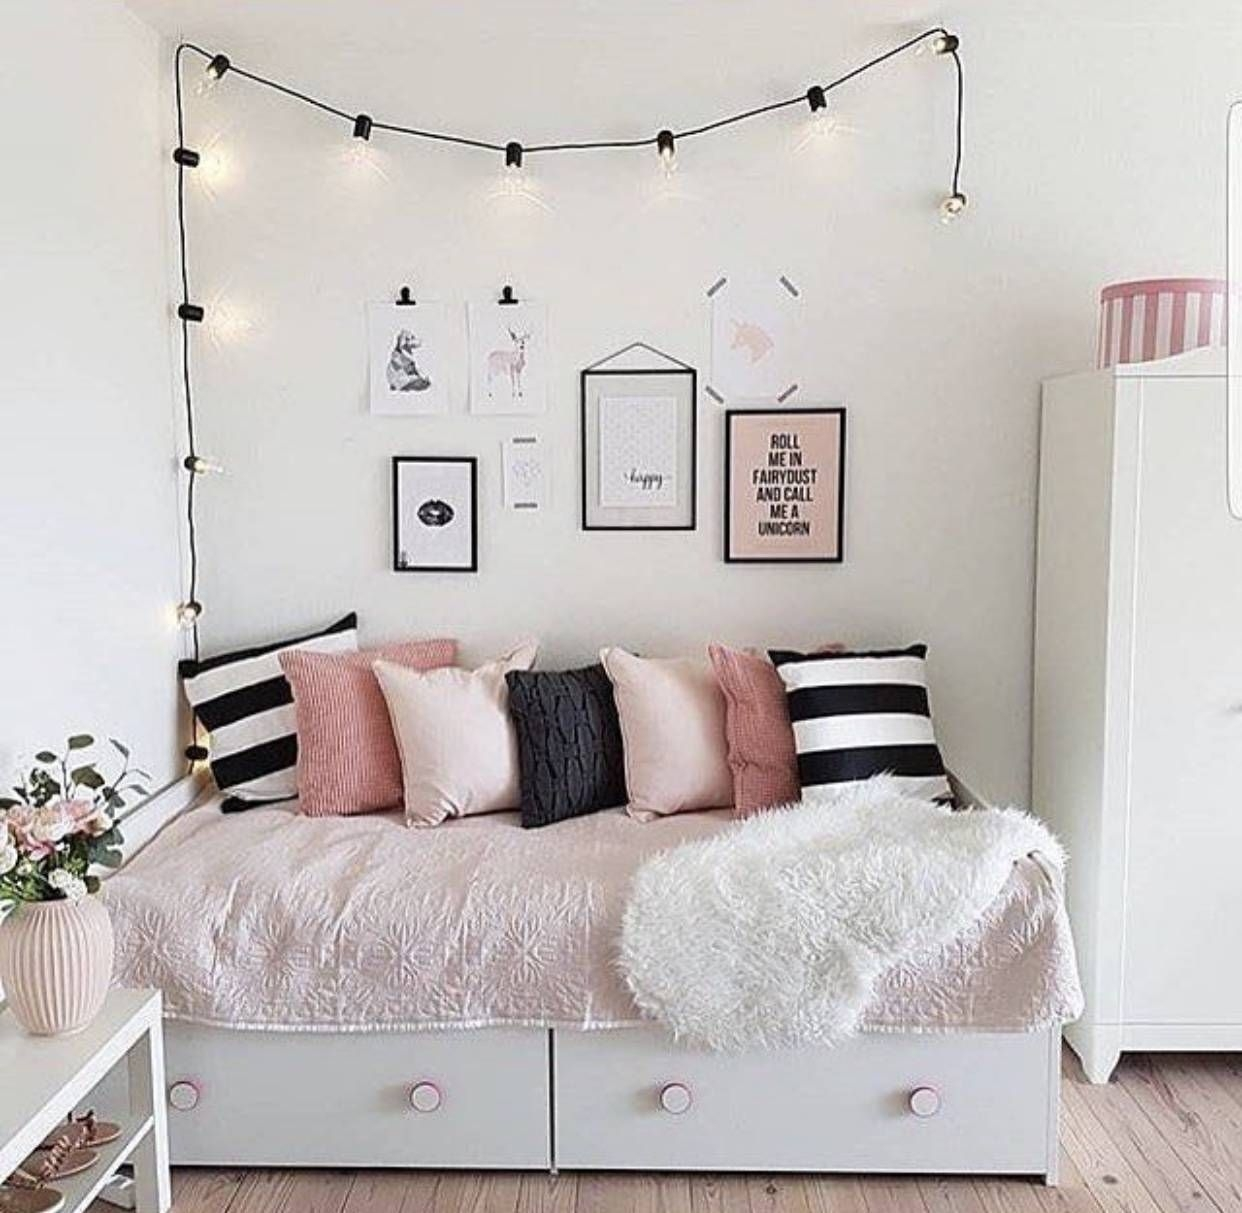 VSCO Room Ideas How to Create a Cute Vsco Room  Cute